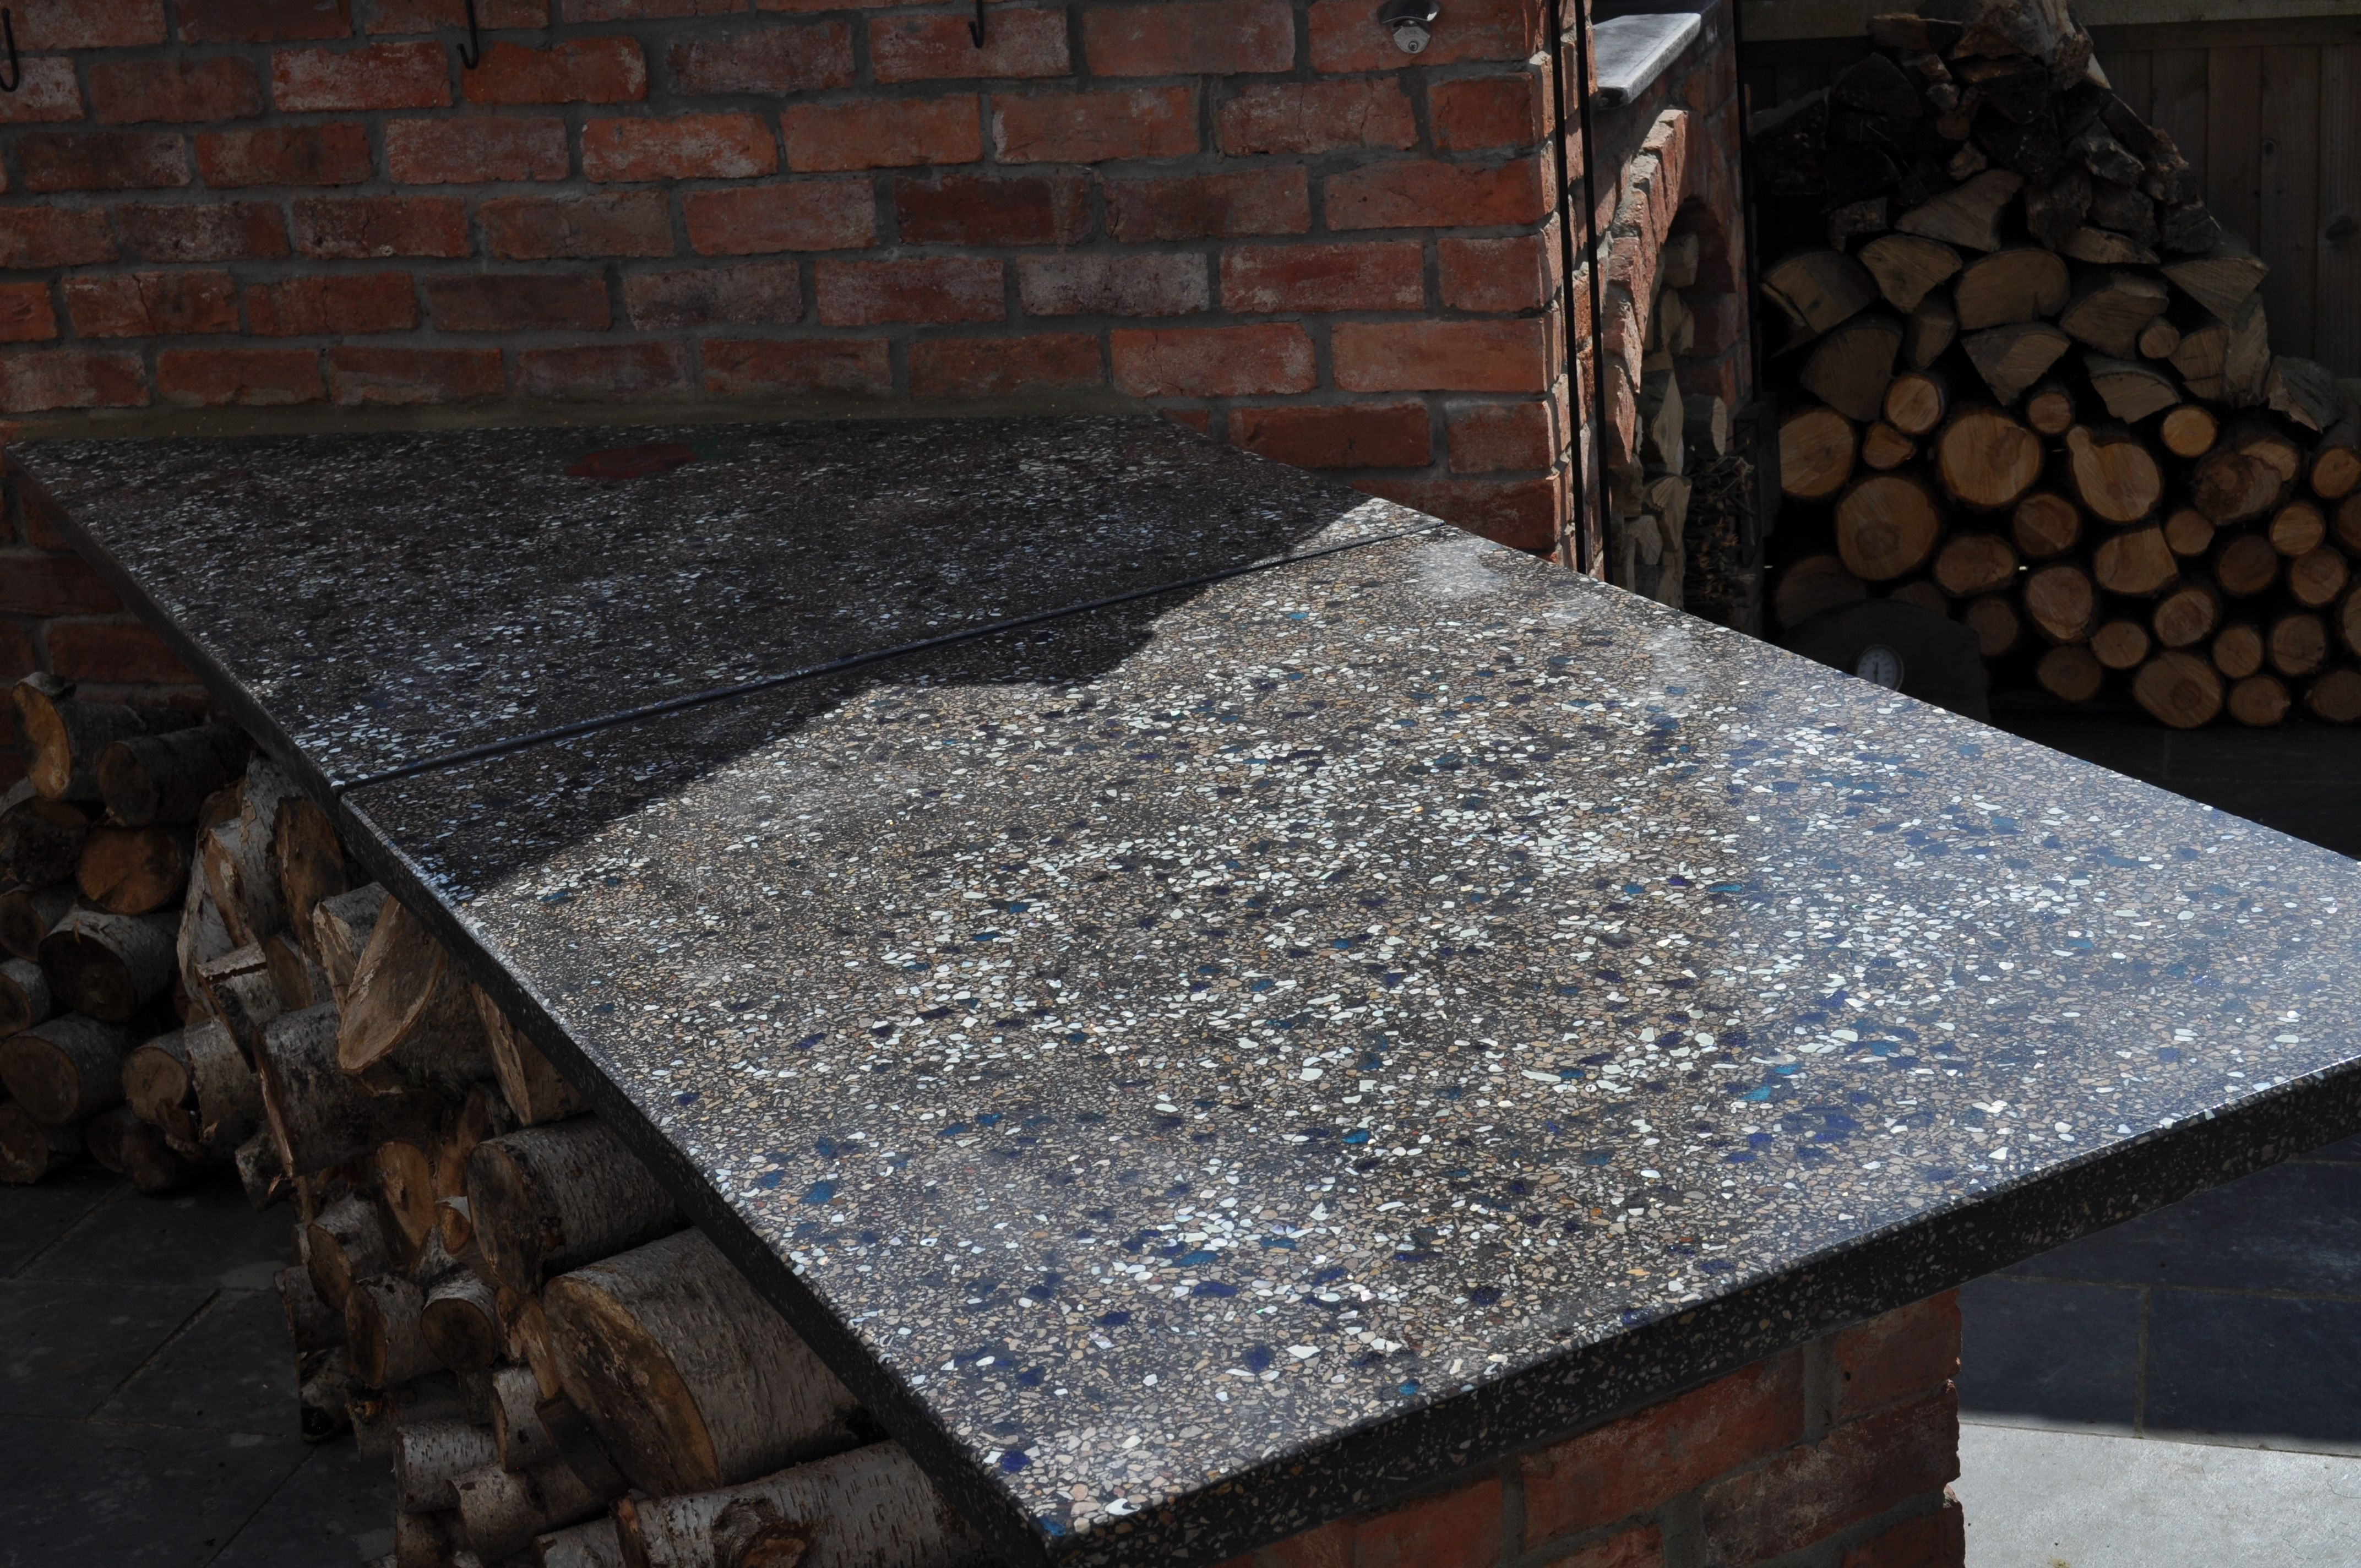 Concrete Countertop With Embedded Glass Rose Glow In The